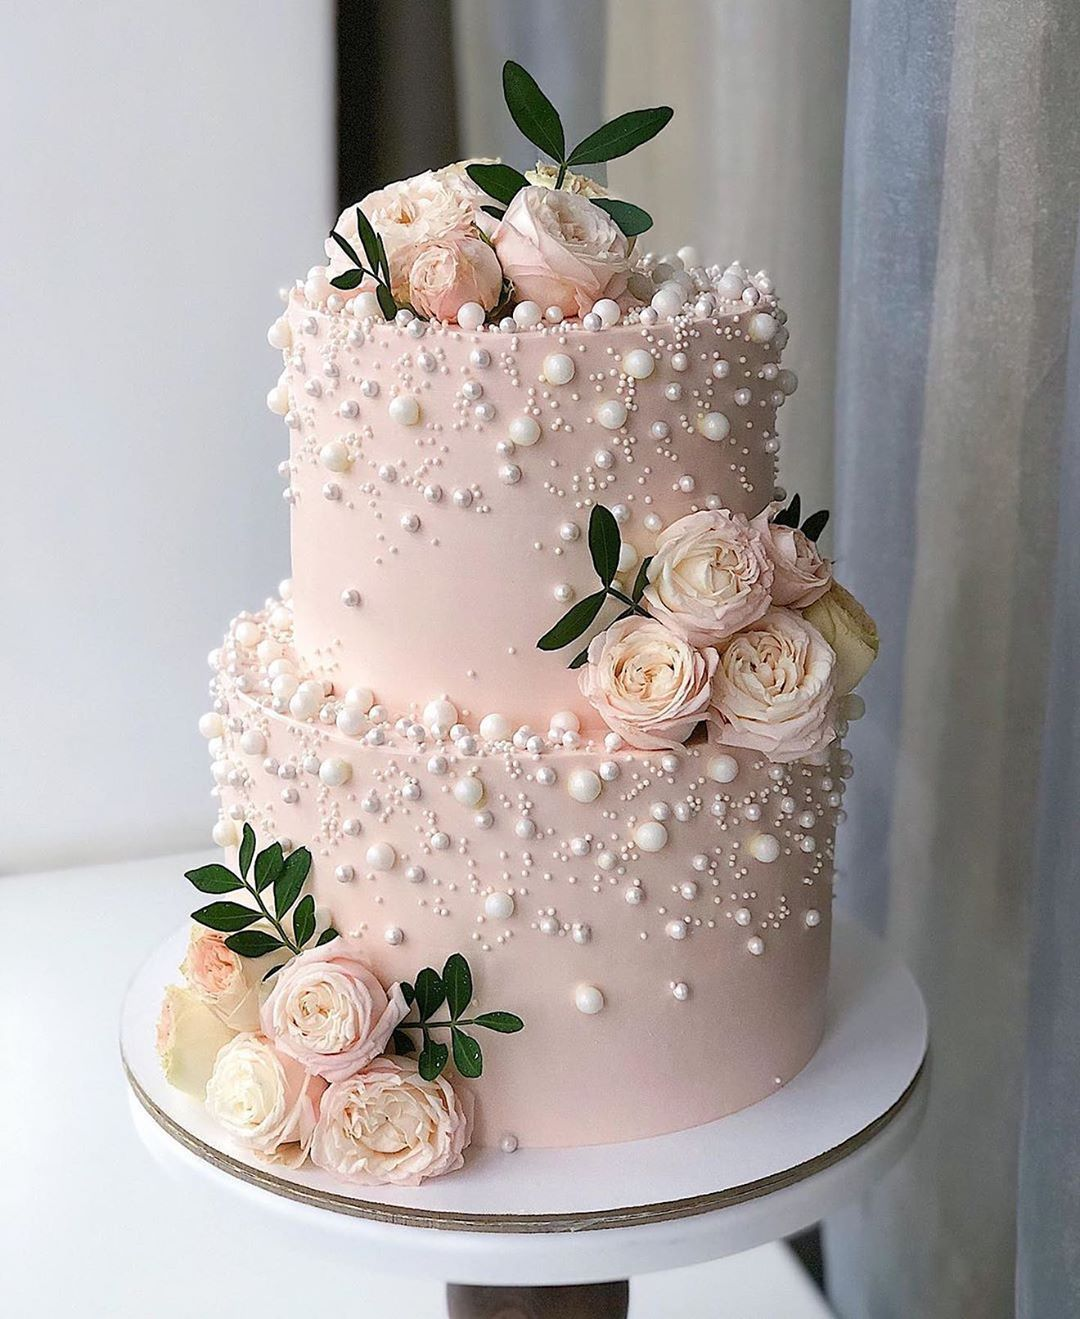 """THE WEDDING BLISS on Instagram: """"Such a beautiful cake🍰😍 Amazing work by  @kasadelika 🌸"""" 